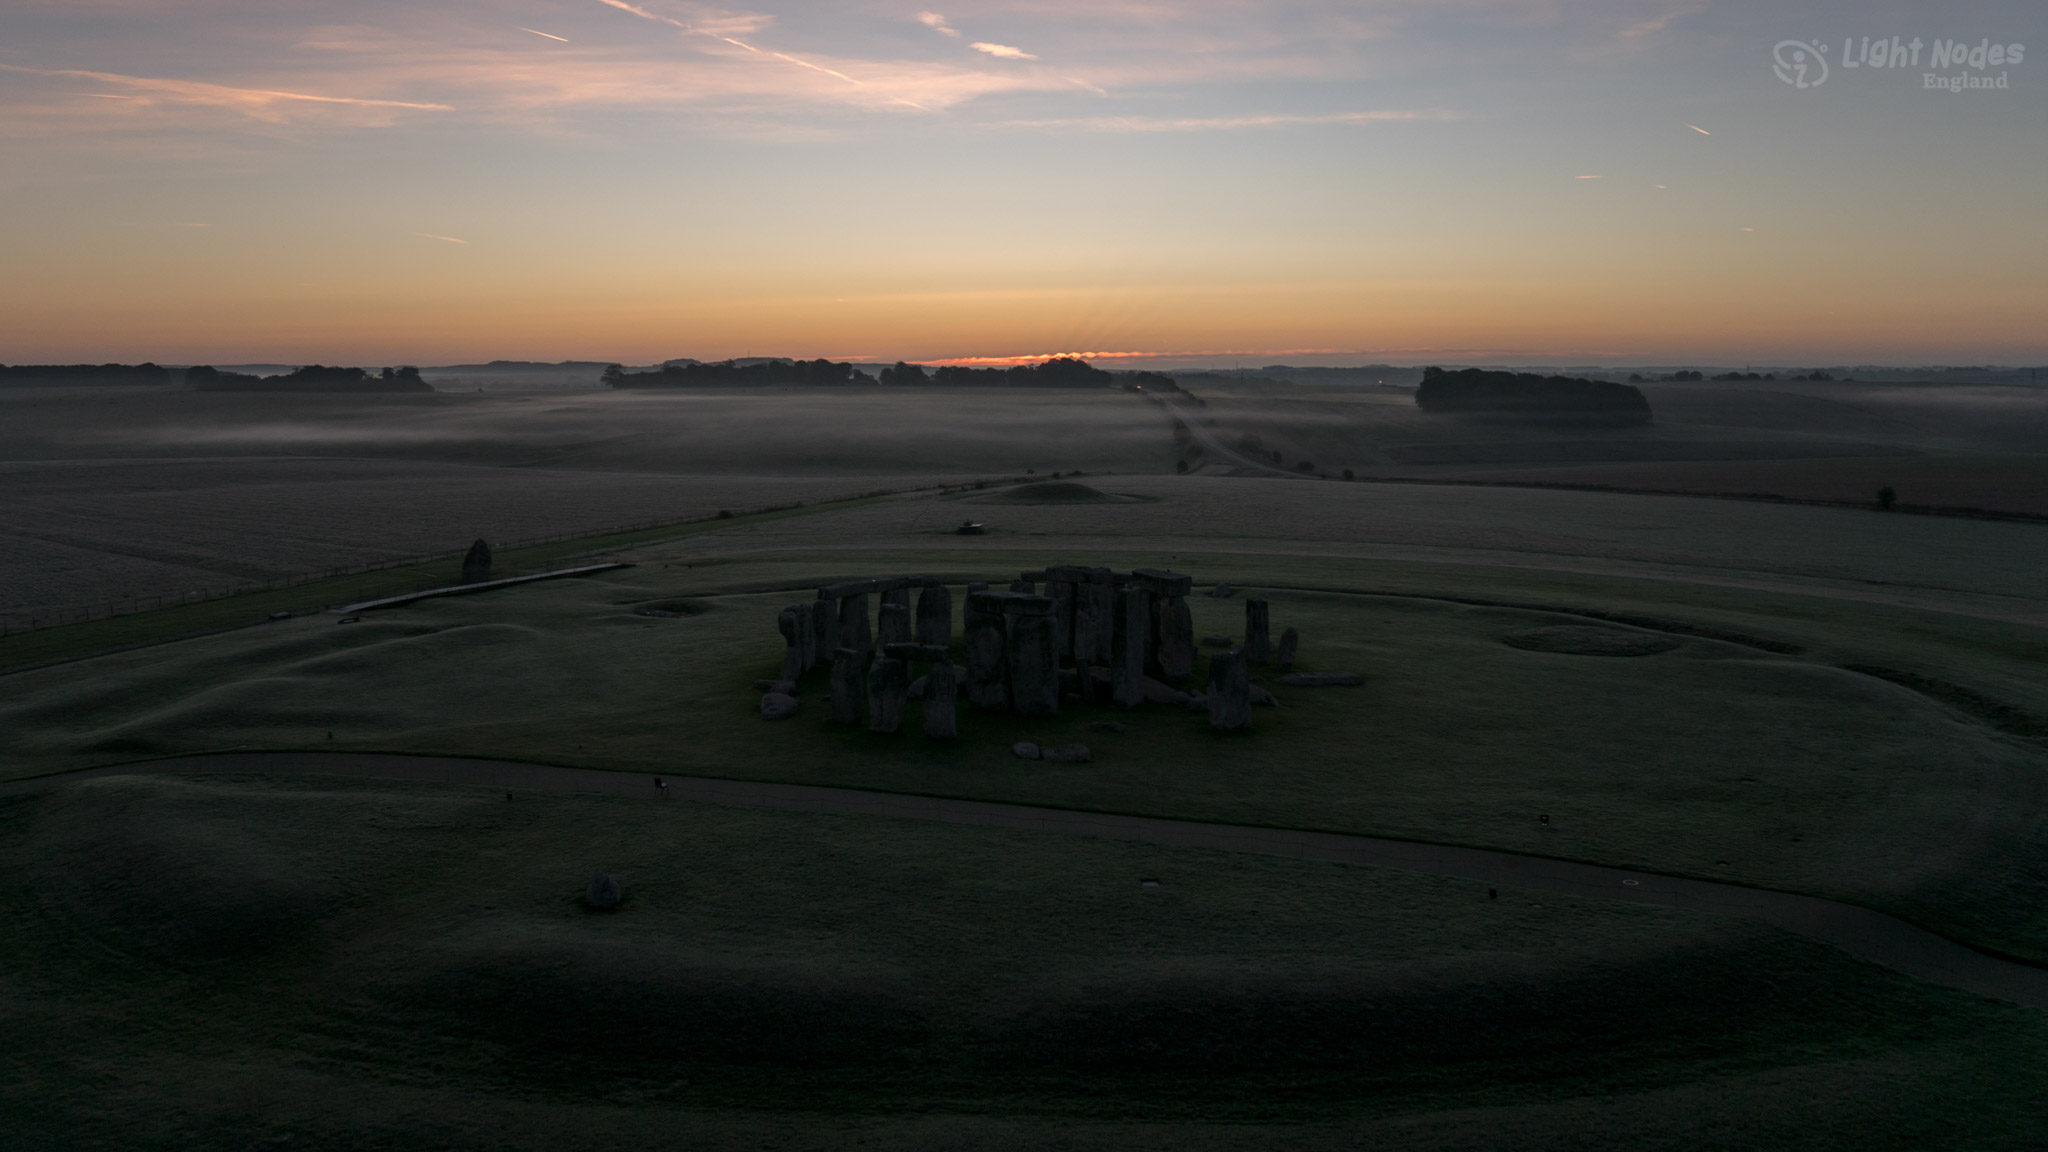 Sunrise at prehistoric Stonehenge with GM1